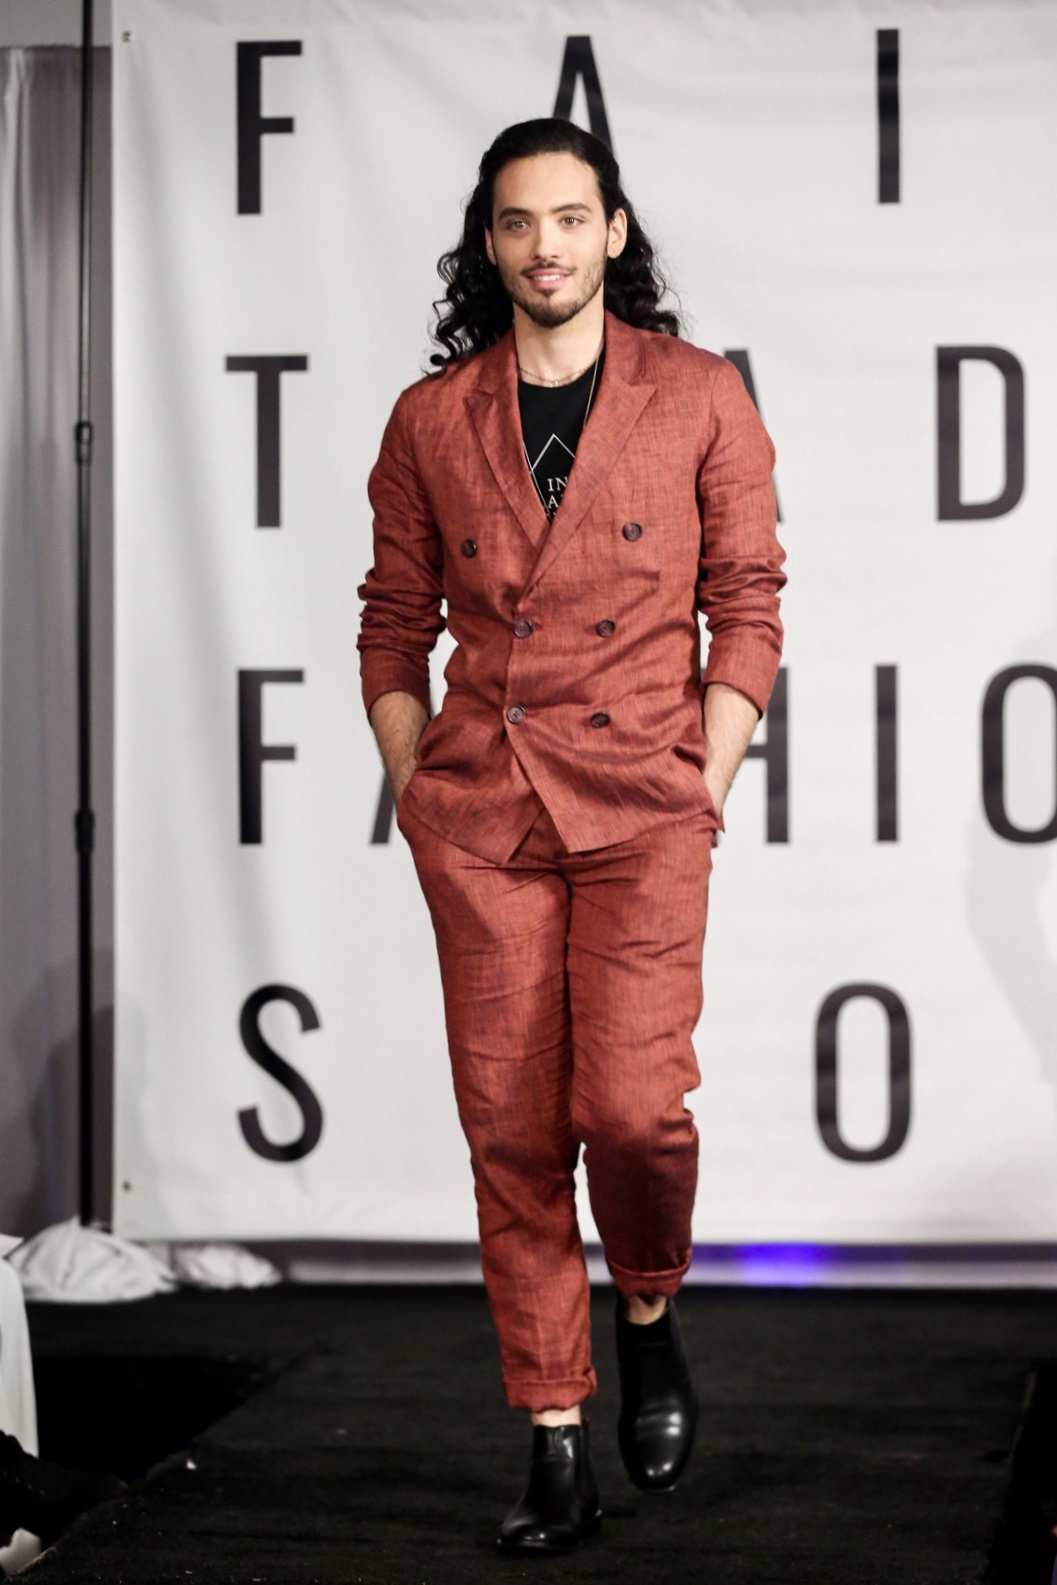 NAHTE linen suit at The Fair Trade Fashion Show in Los Angeles 11/2018